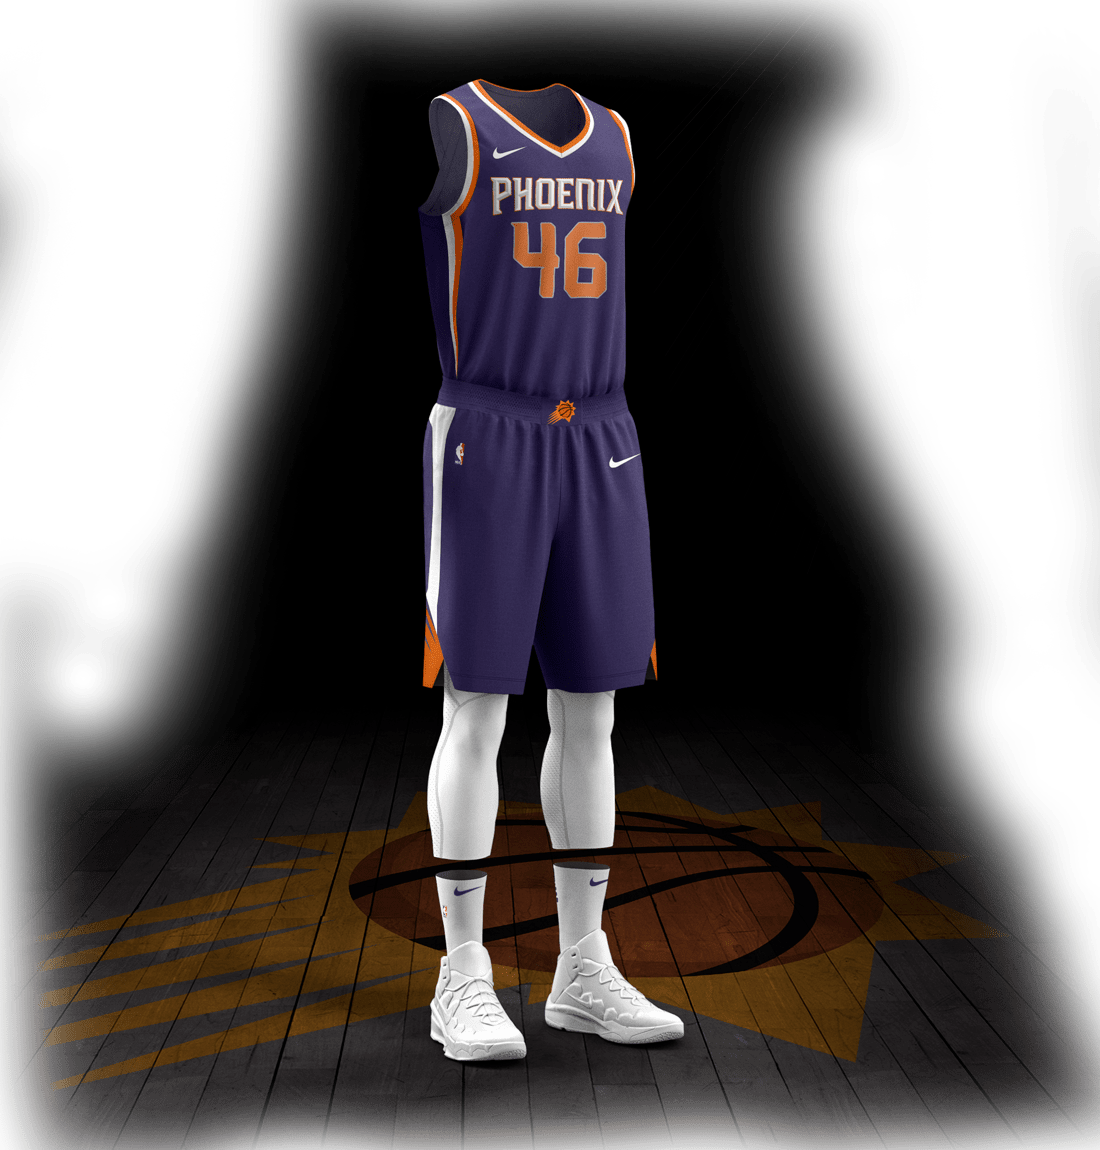 new arrive e6d3c 34949 Top and Bottom 3 Rankings of Nike's New NBA Threads | Shaw ...